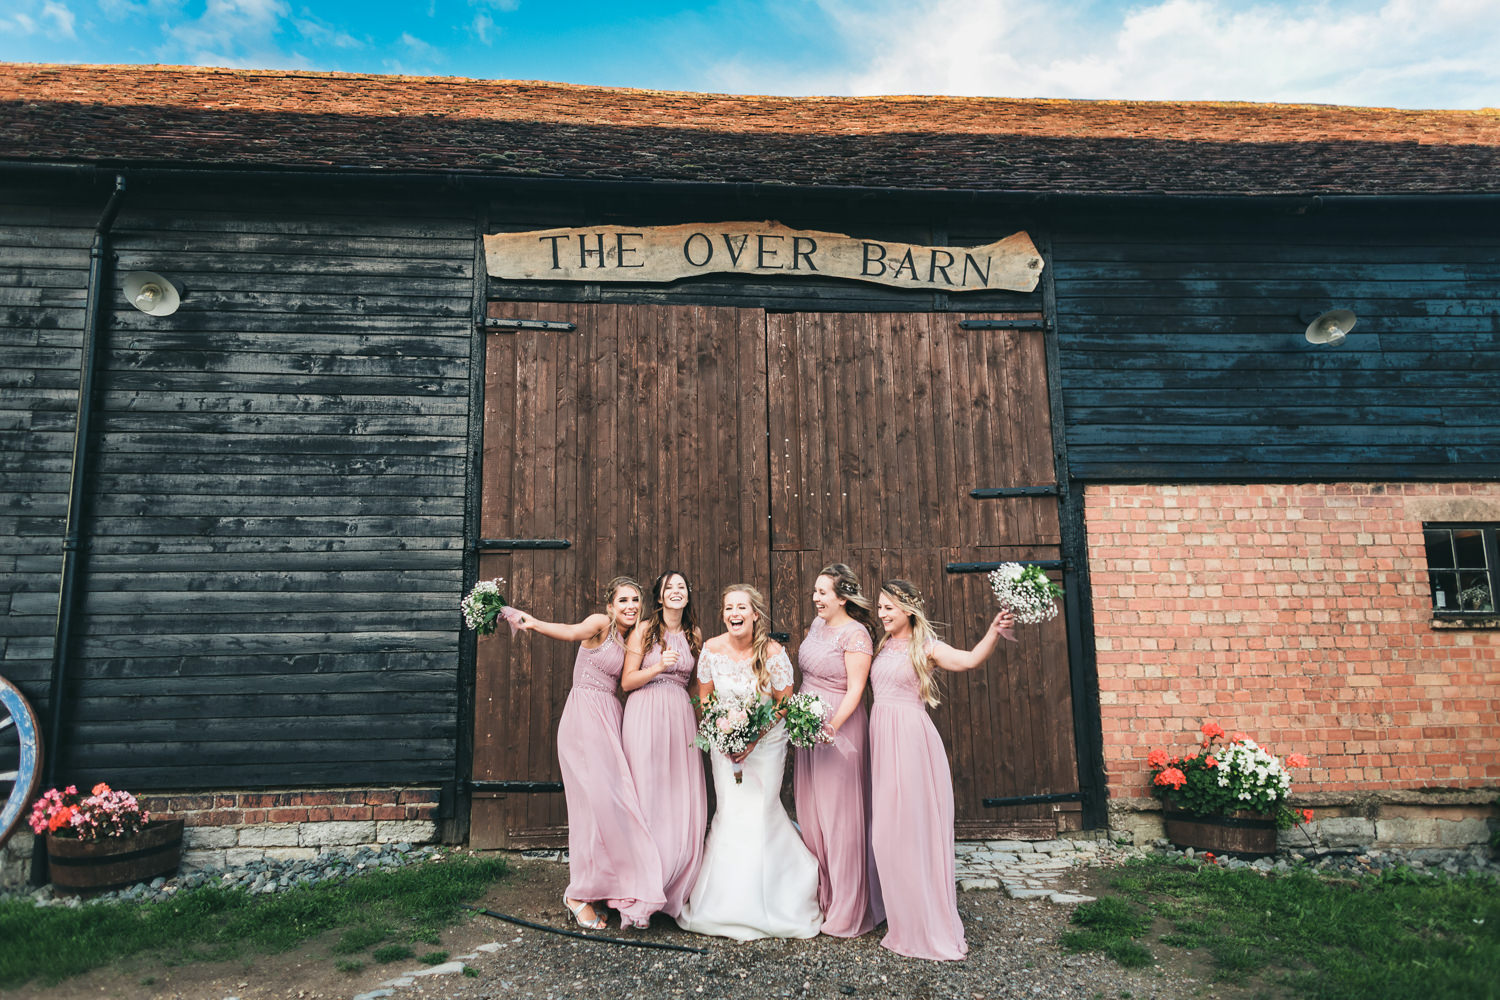 H&J | OVER BARN FARM WEDDING PHOTOGRAPHY-921.JPG